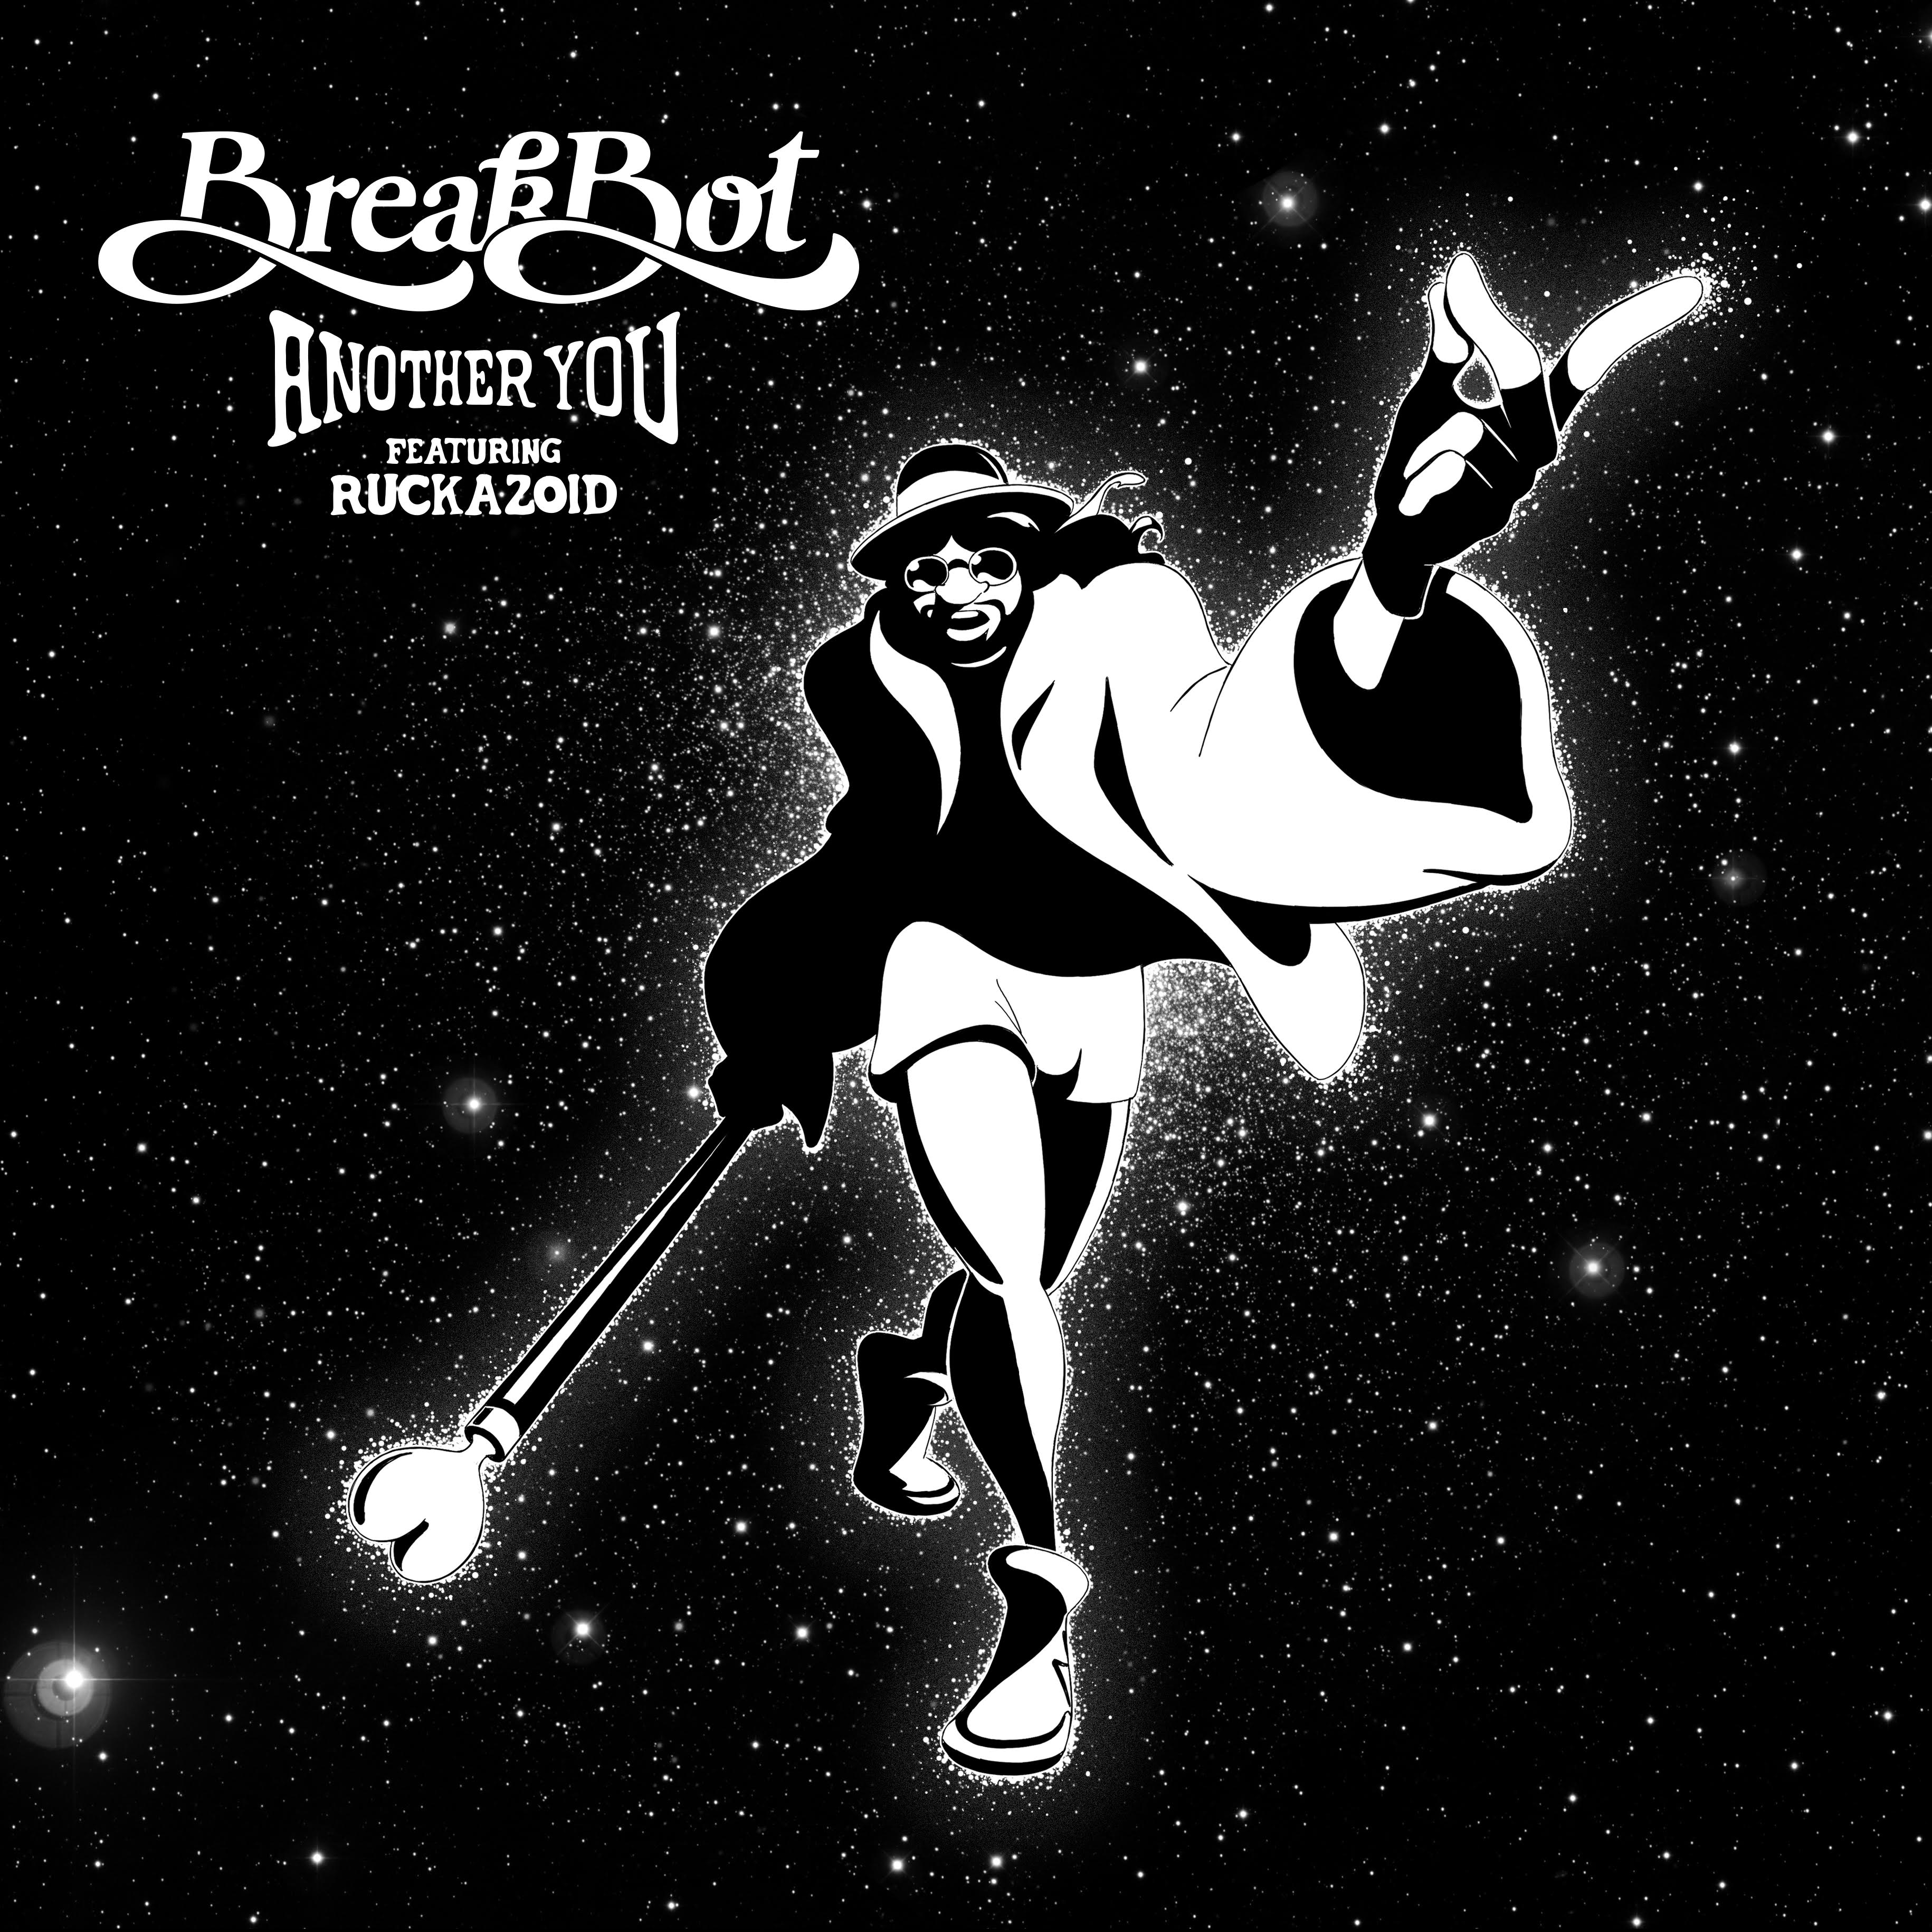 """BREAKBOT """"ANOTHER YOU"""" FT RUCKAZOID"""